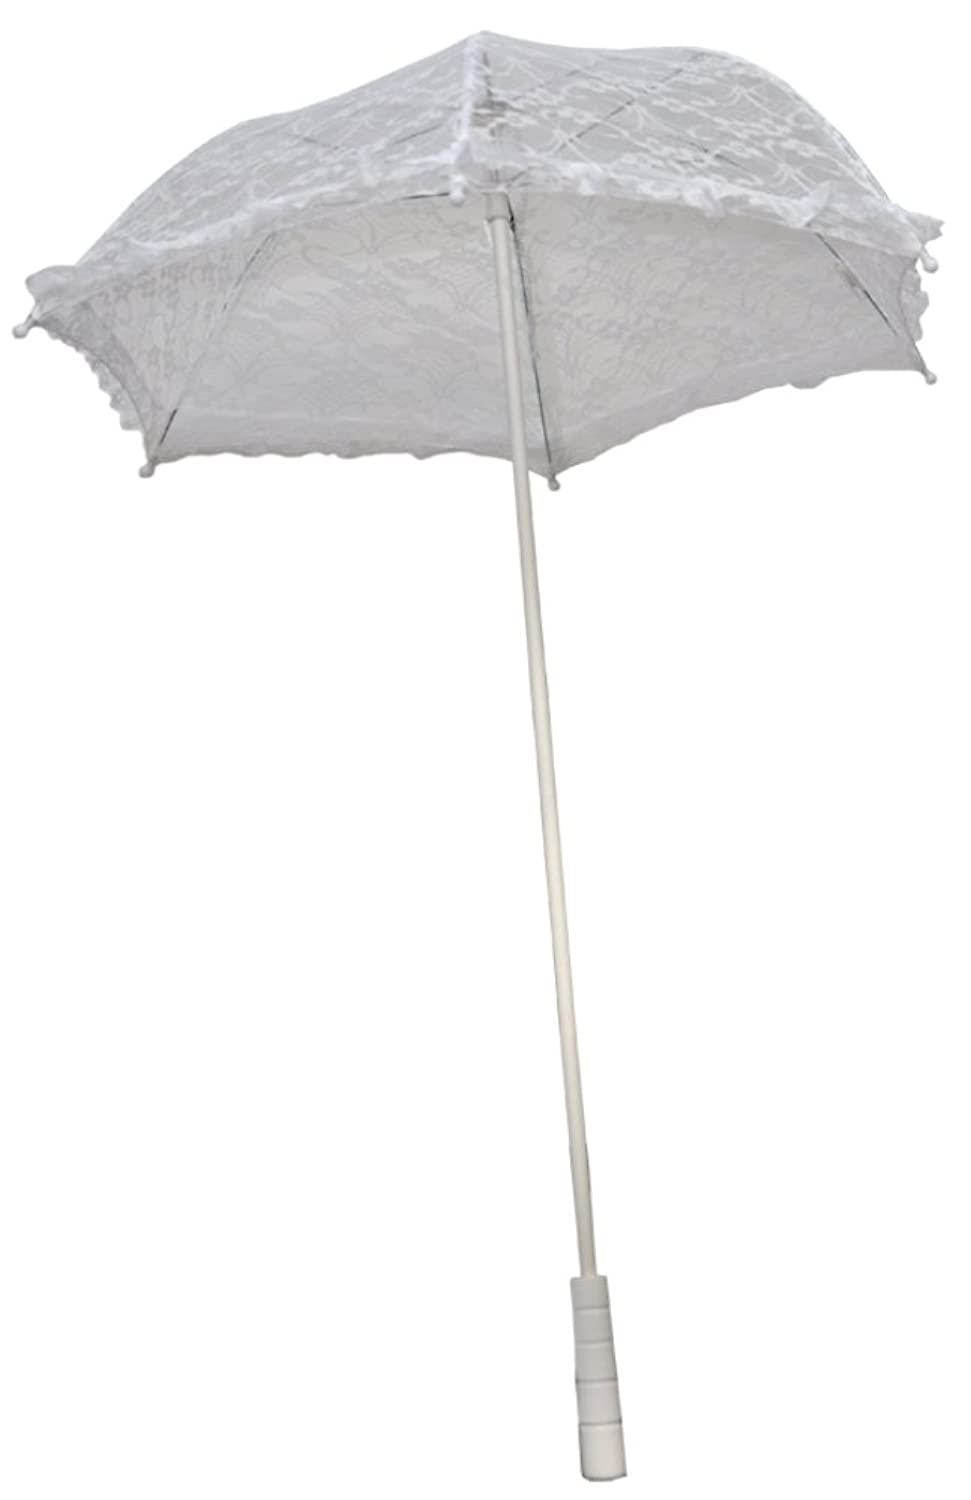 Victorian Parasols Morris Custumes Womens Parasol Nylon Ruffle $22.30 AT vintagedancer.com